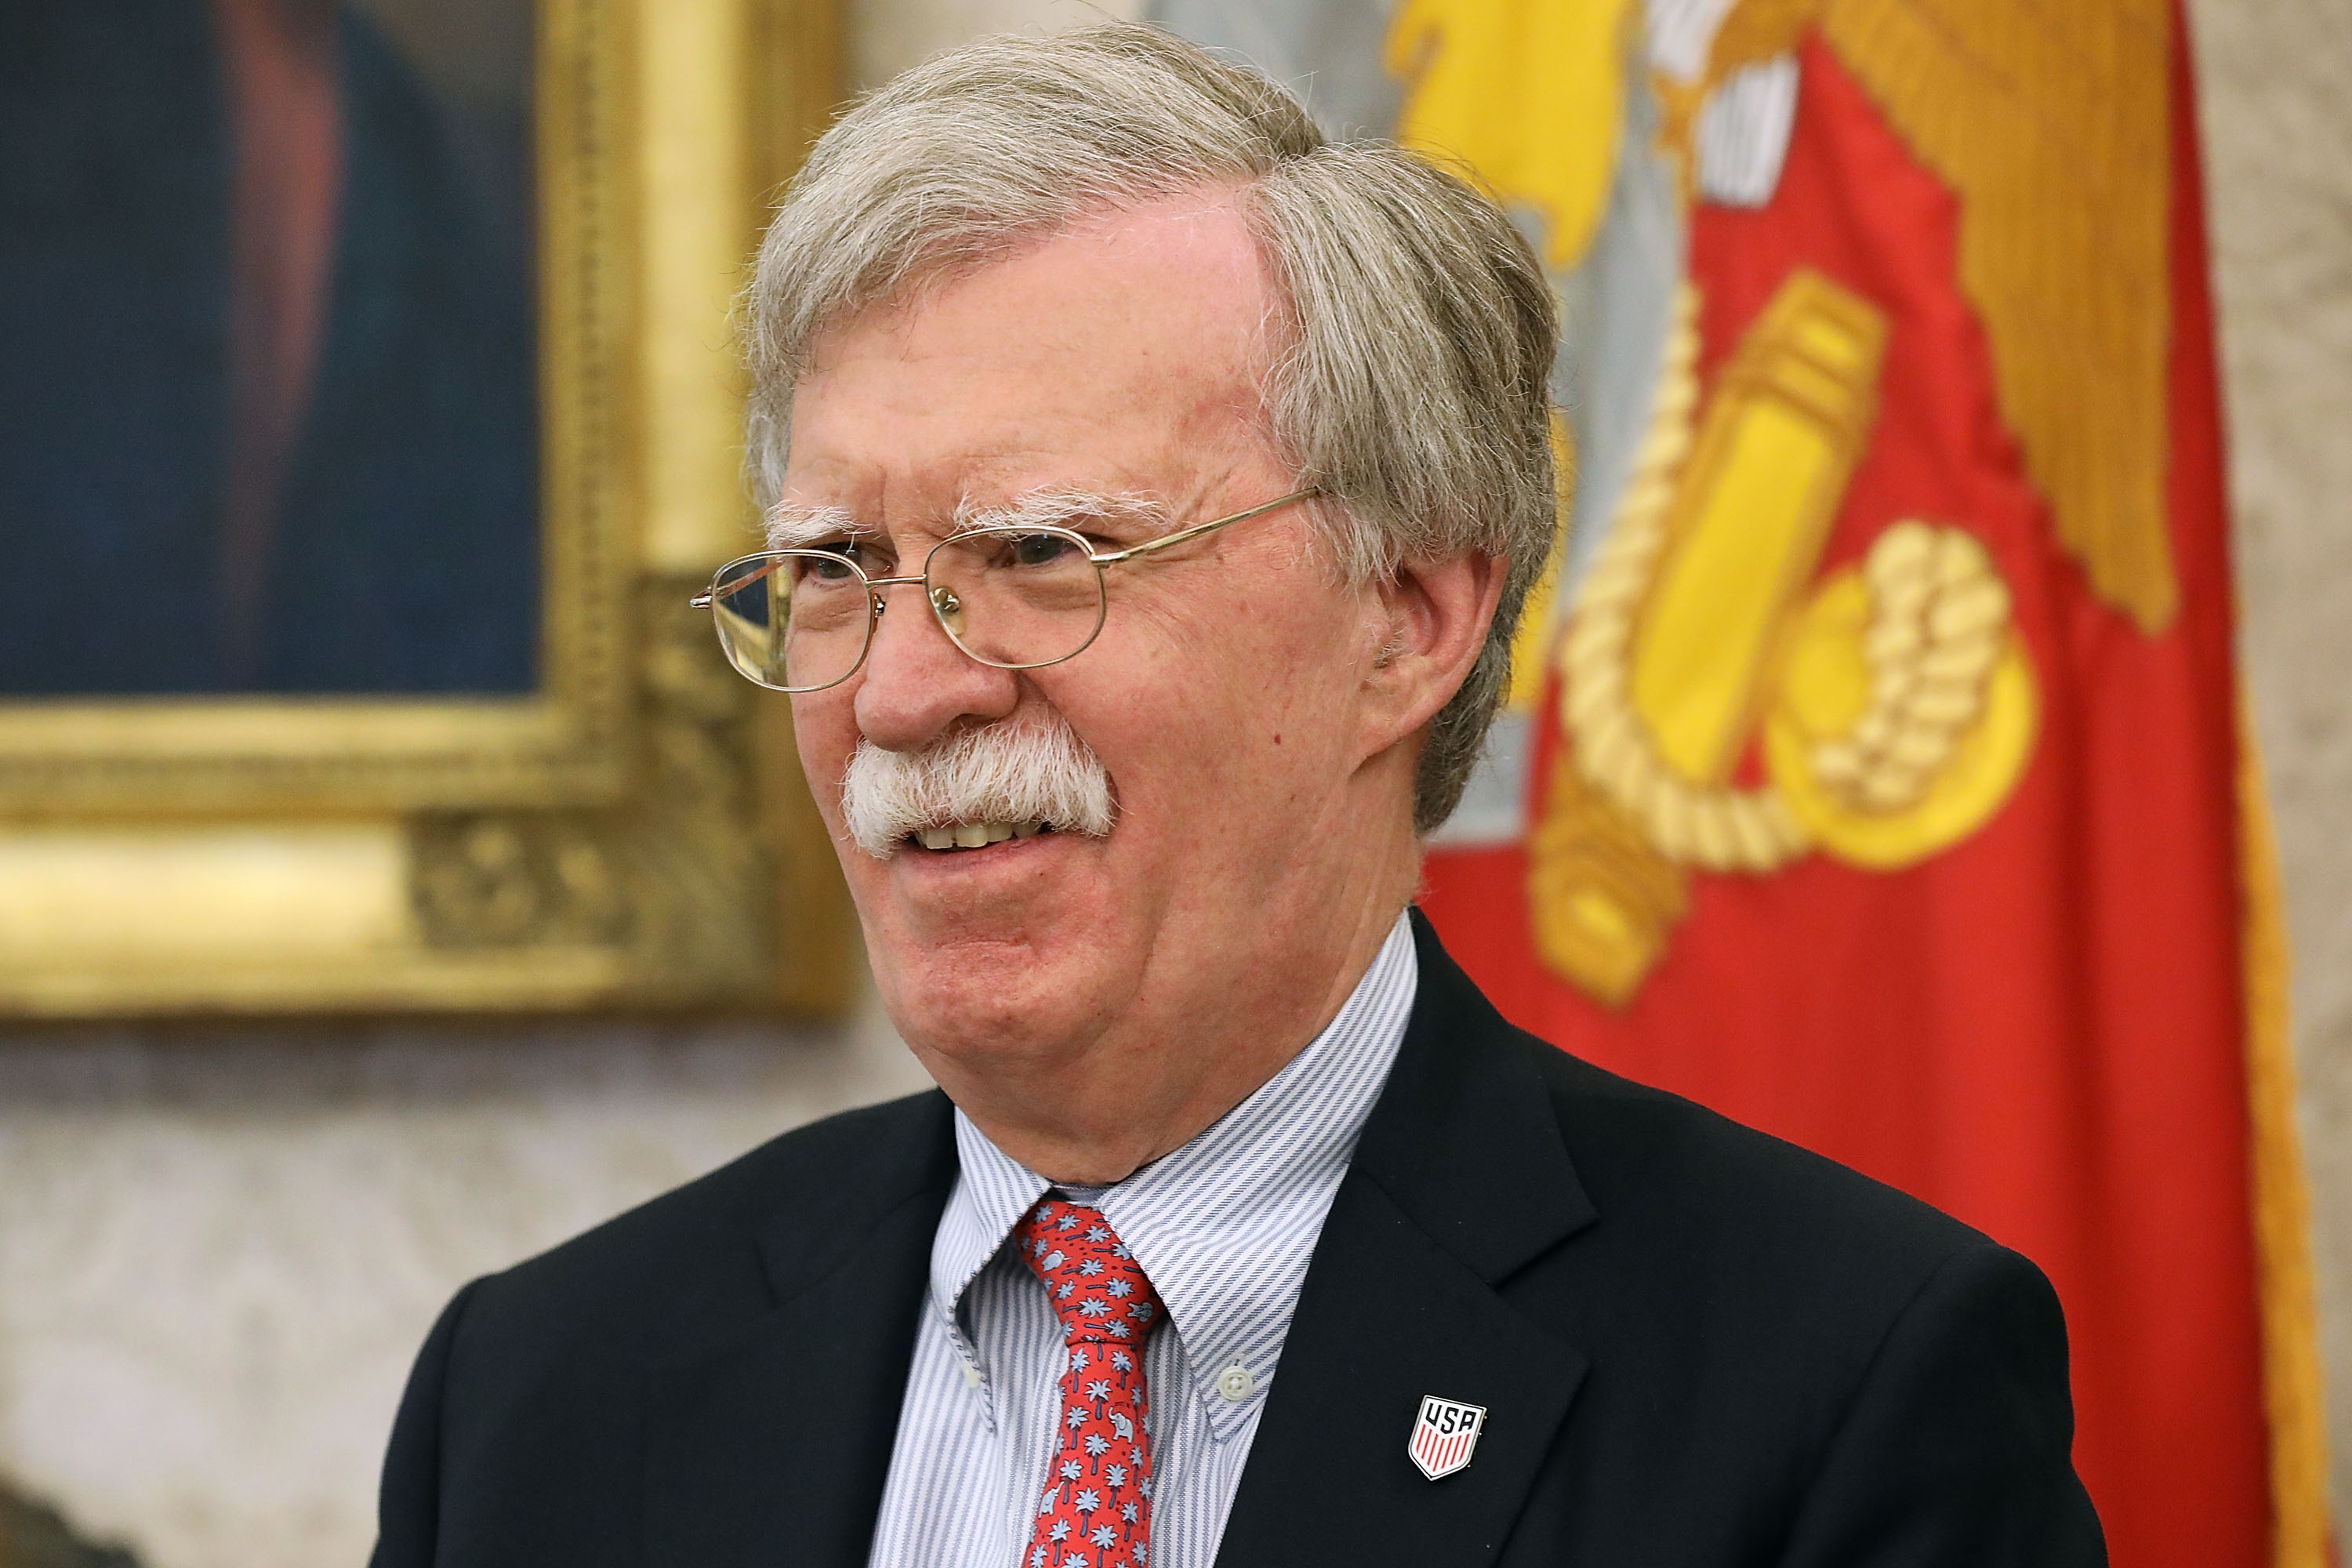 John Bolton's obsession with fighting Iran is making Trump policy more dangerous